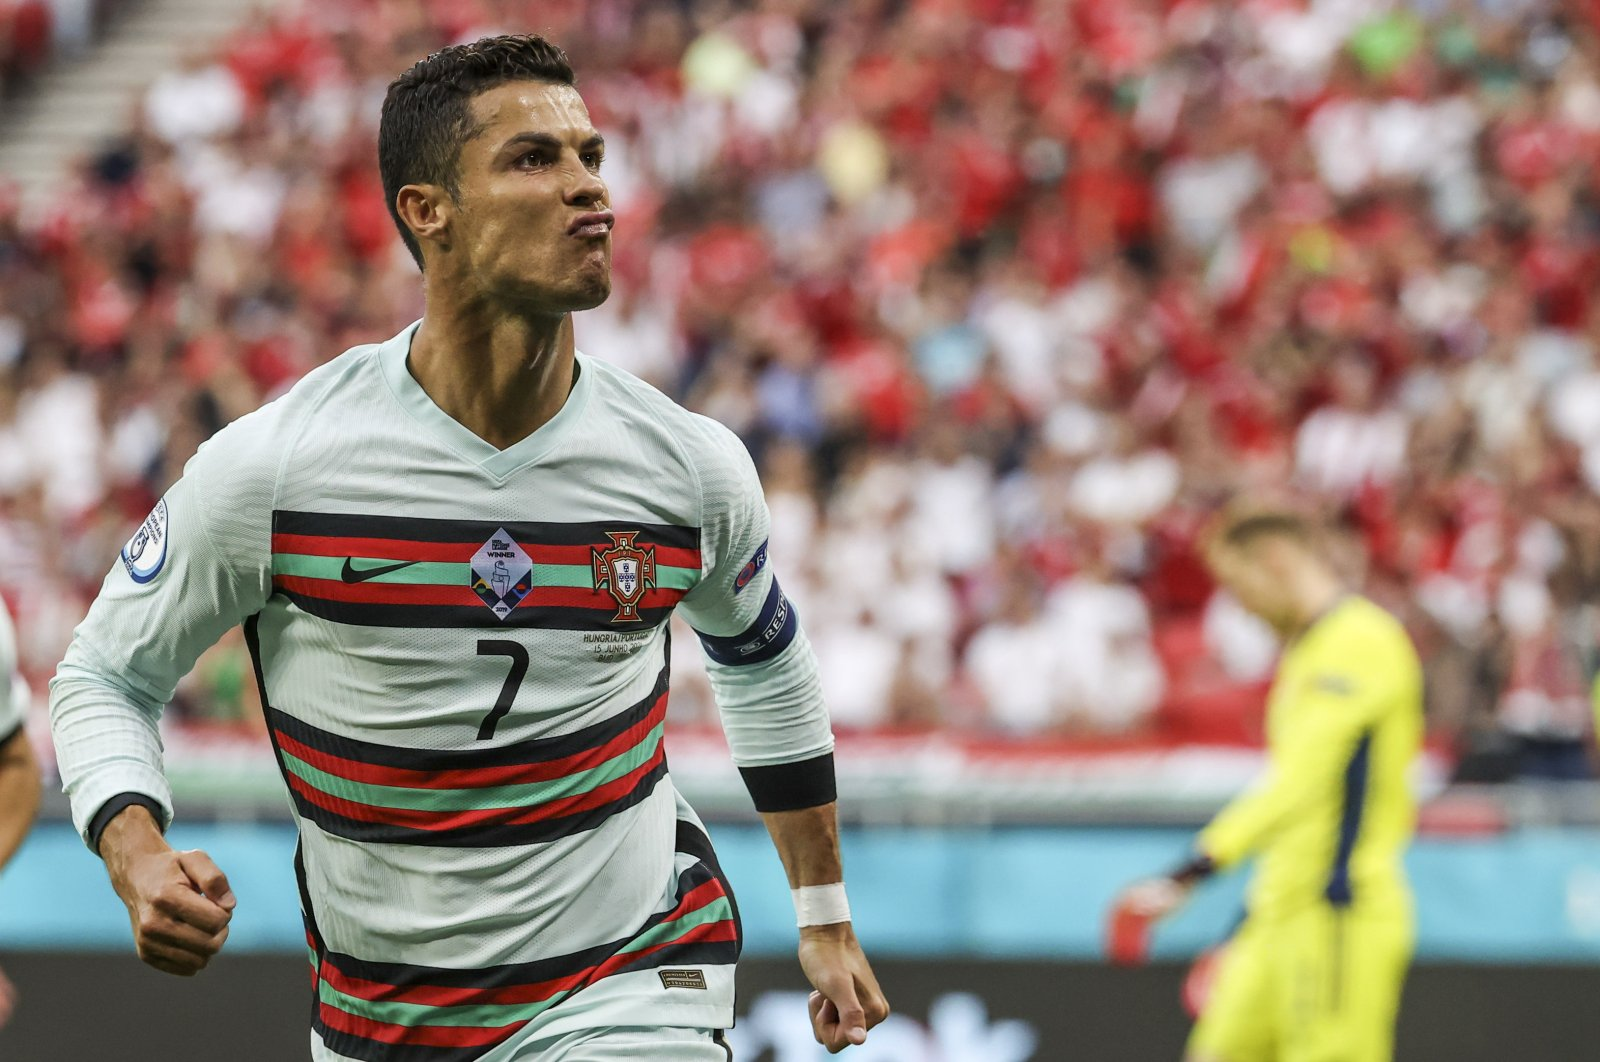 Portugal's Cristiano Ronaldo celebrates after scoring his second team goal during the Euro 2020 championship Group F match between Hungary and Portugal at Puskas Arena in Budapest, Hungary, June 15, 2021. (AP Photo)